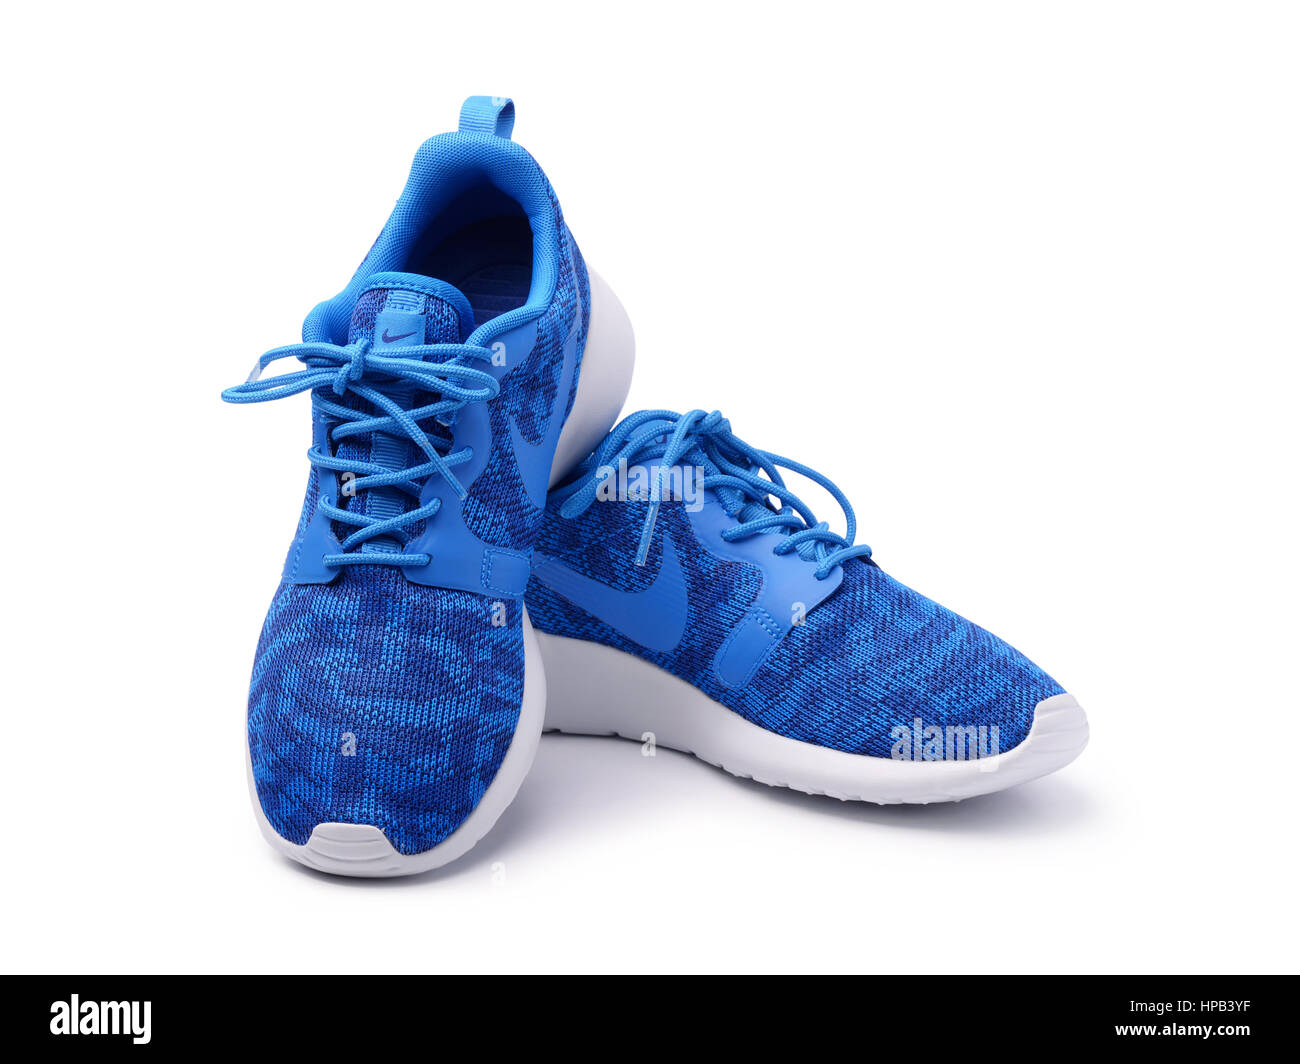 SAMARA, RUSSIA - June 8, 2015: female Nike sneakers for running, training, in gray and blue, showing the Nike logo, - Stock Image